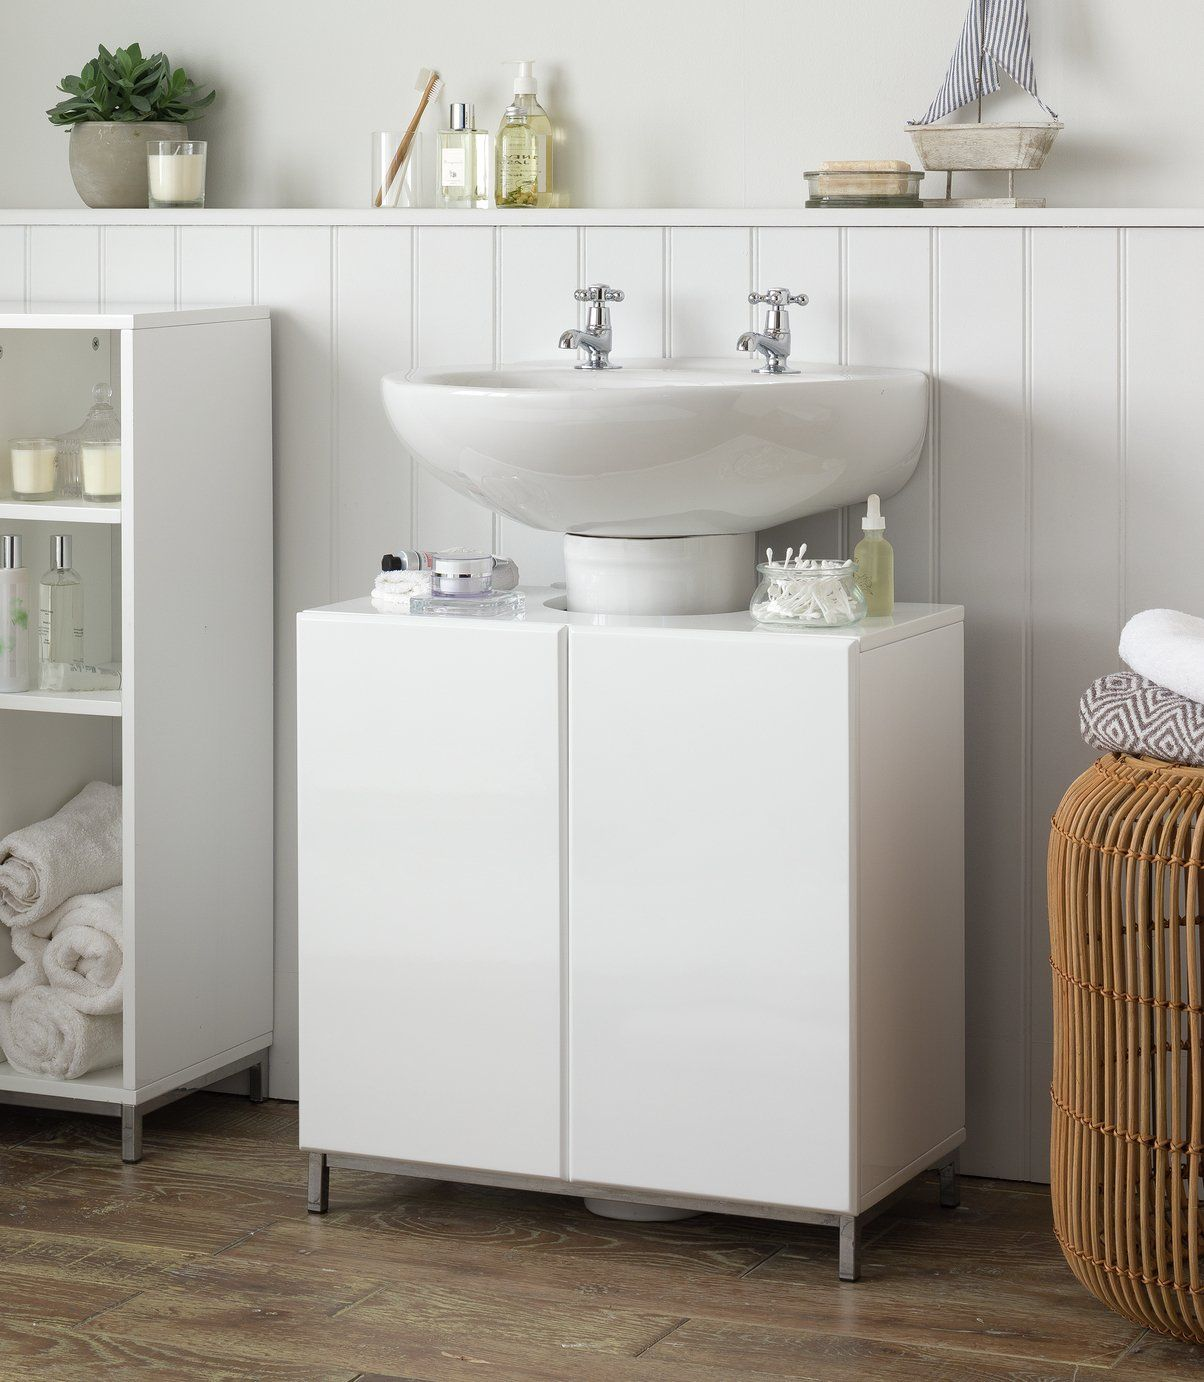 Buy Argos Home Gloss Under Sink Unit White Bathroom Shelves And Storage Units In 2020 Sink Units Under Sink Unit Under Sink